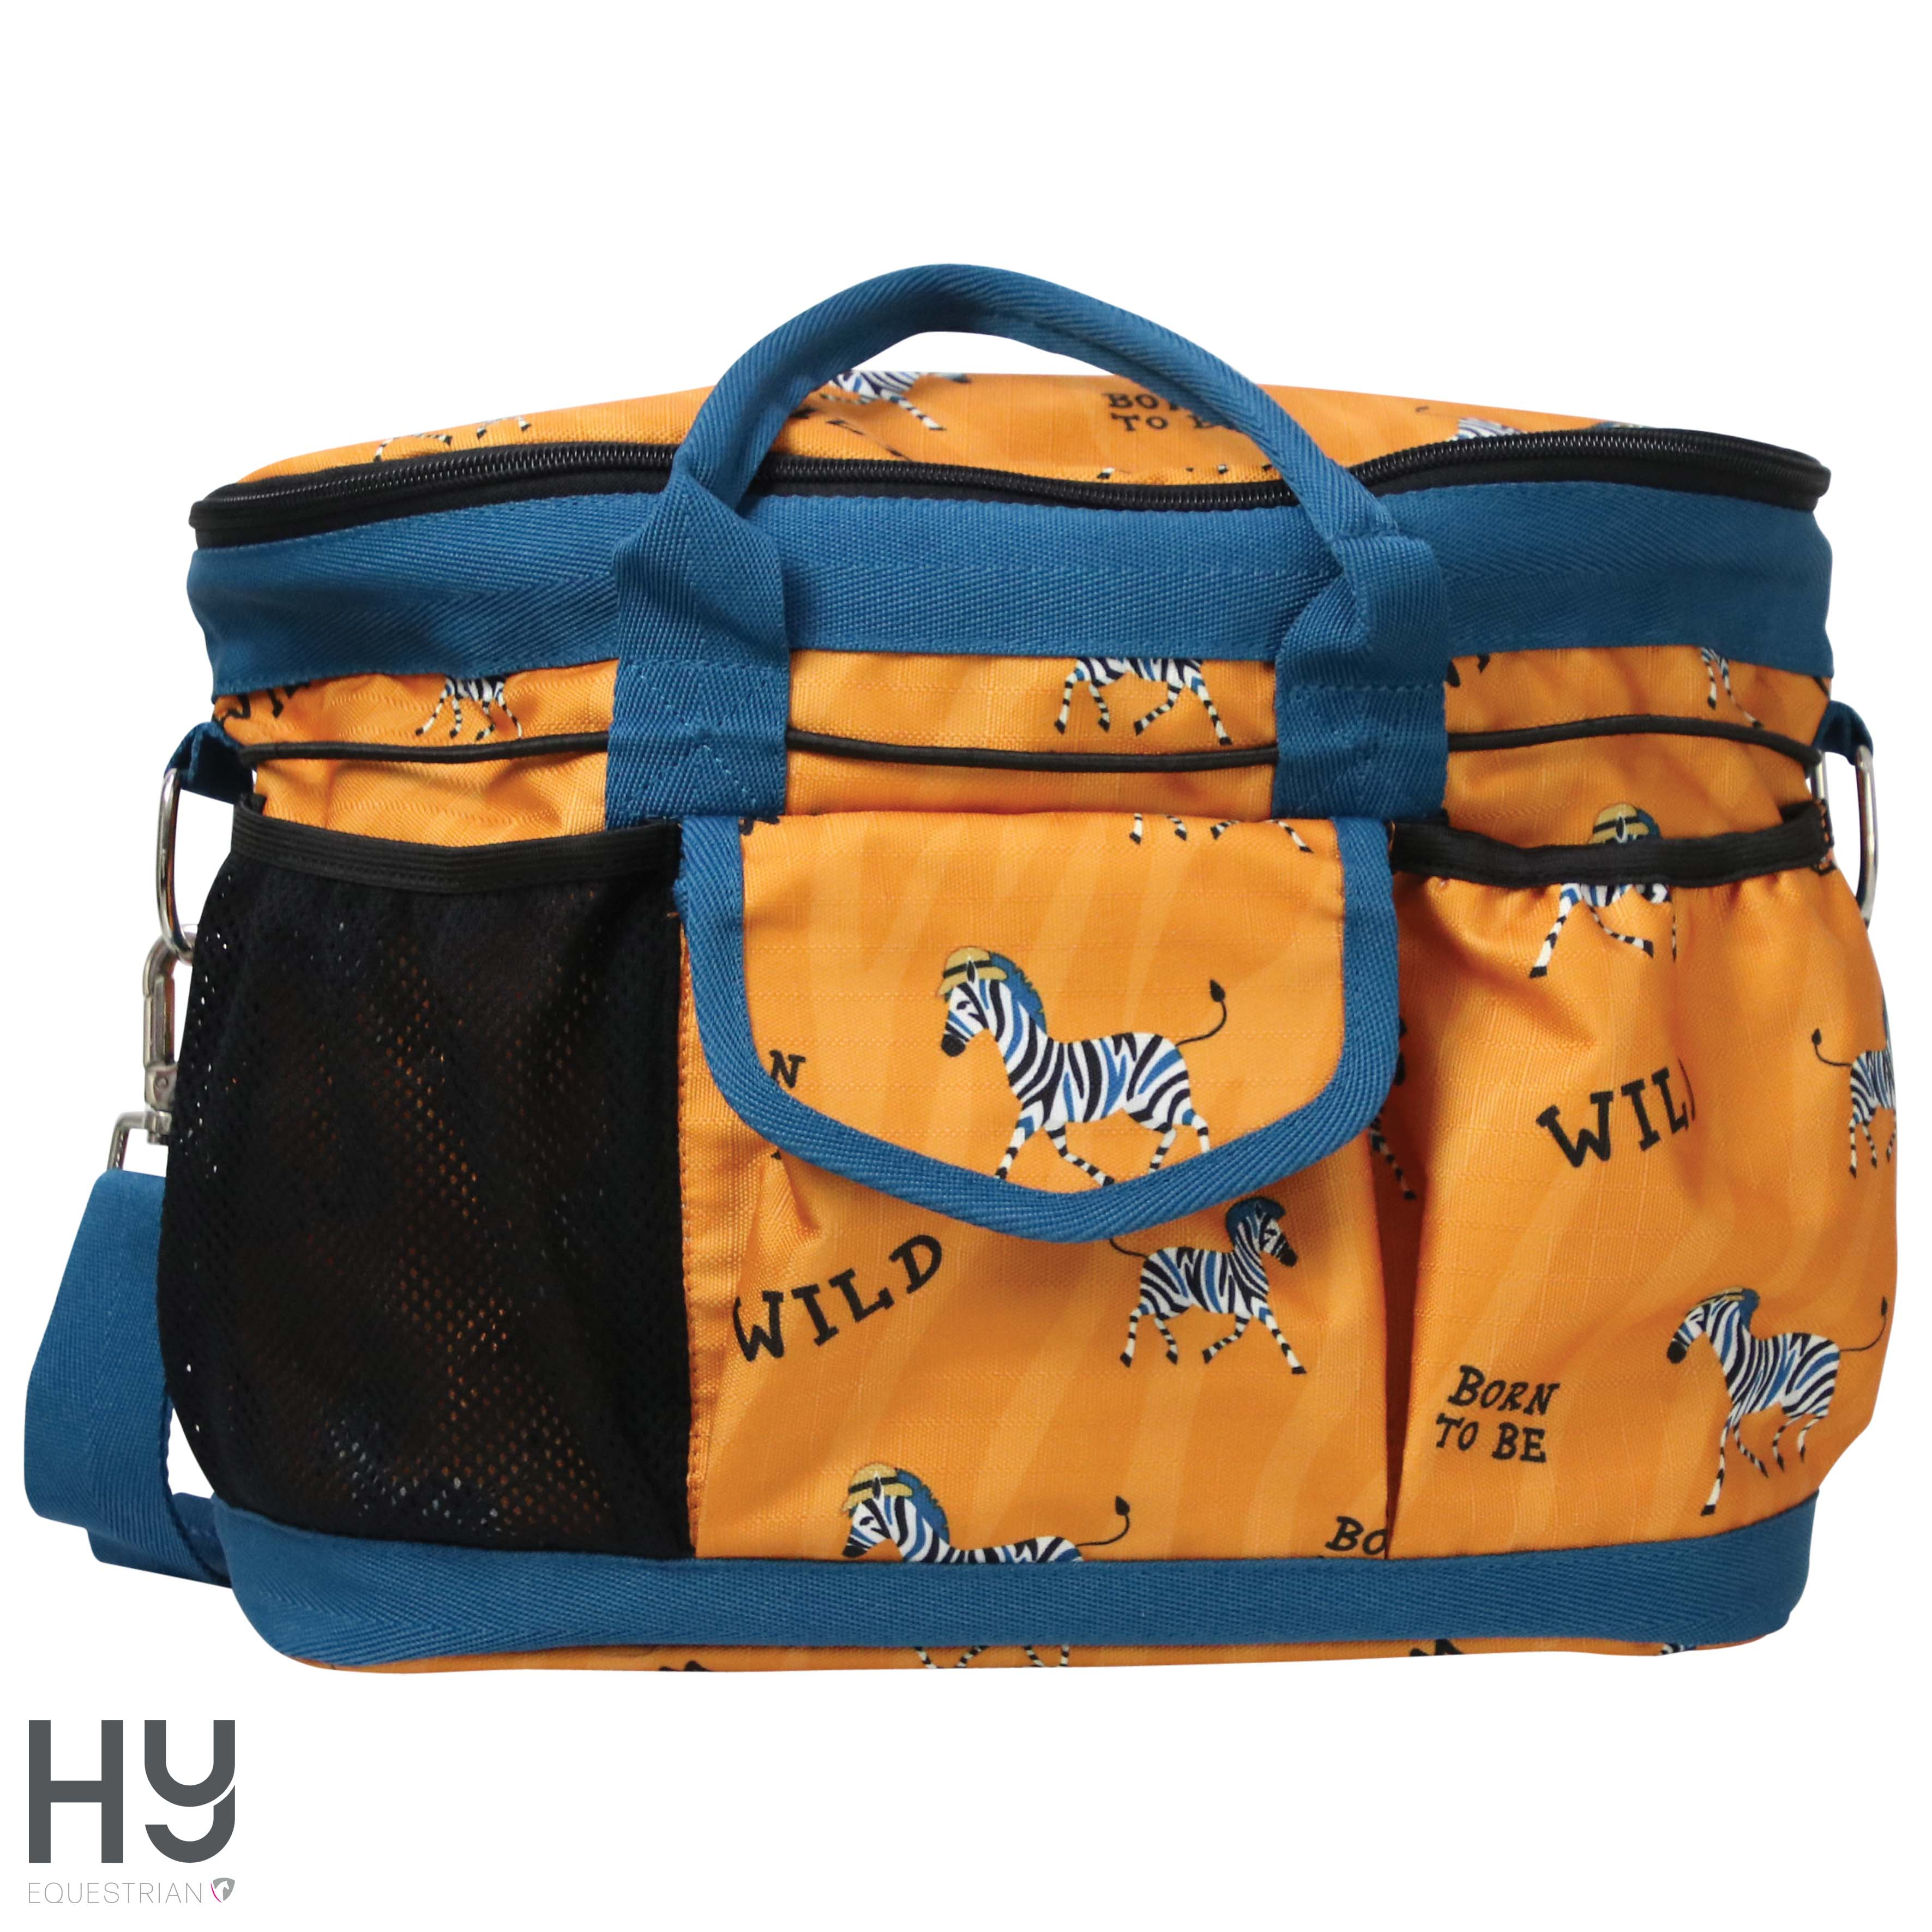 Born To Be Wild Grooming Bag